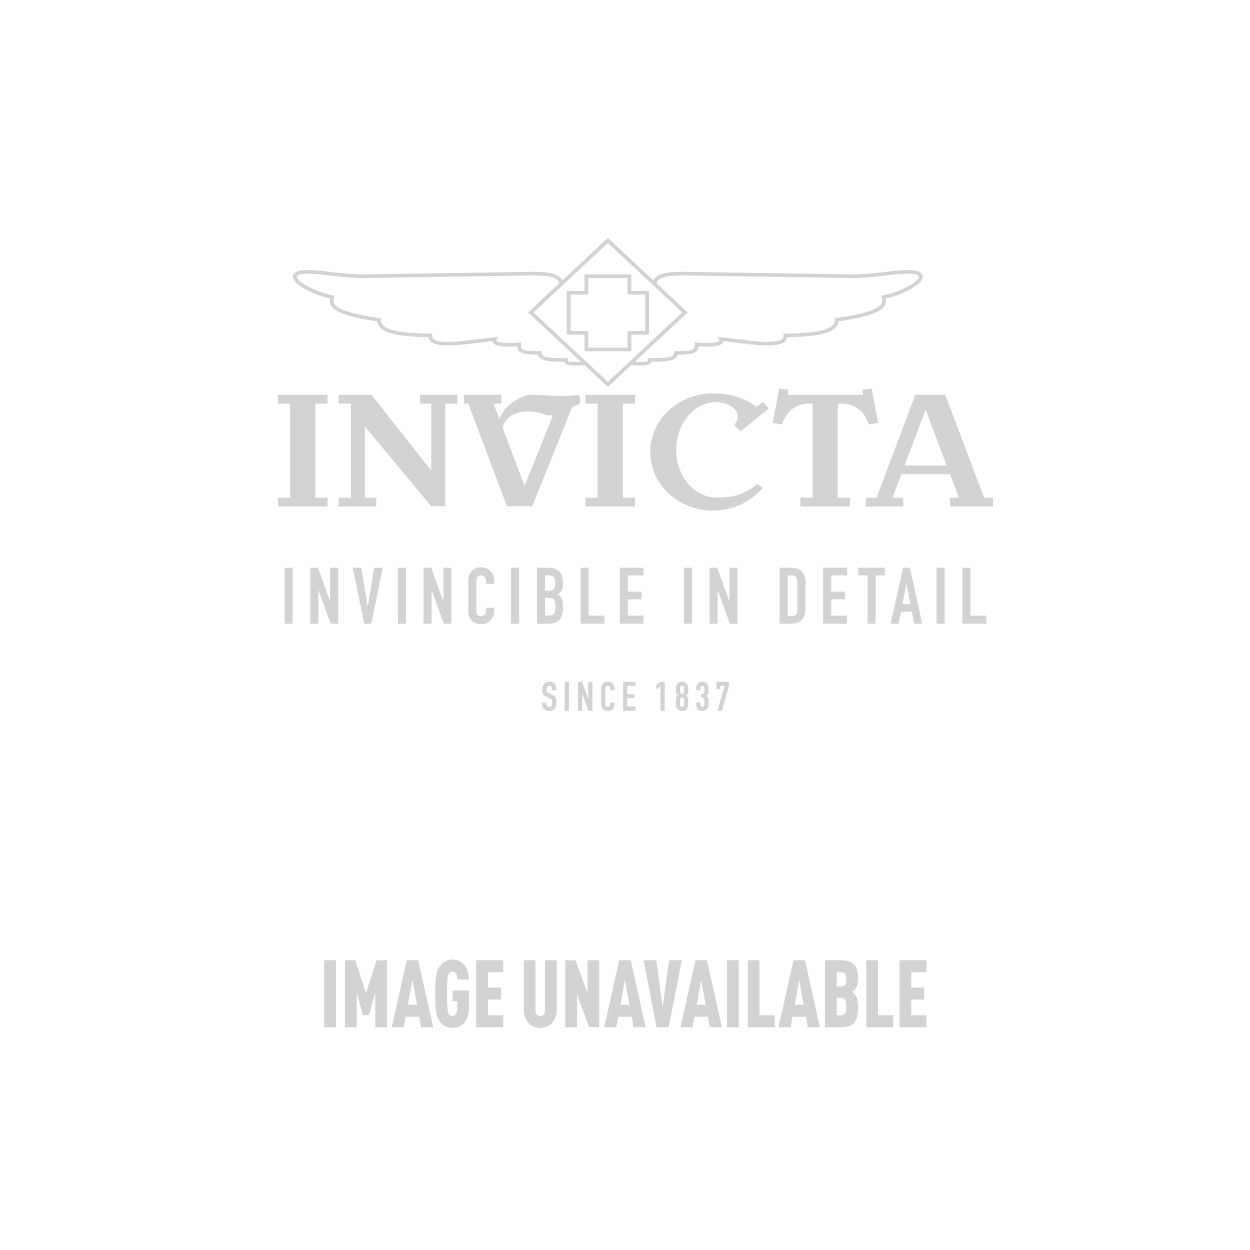 Invicta Angel Swiss Movement Quartz Watch - Gold case with Gold tone Stainless Steel band - Model 14374